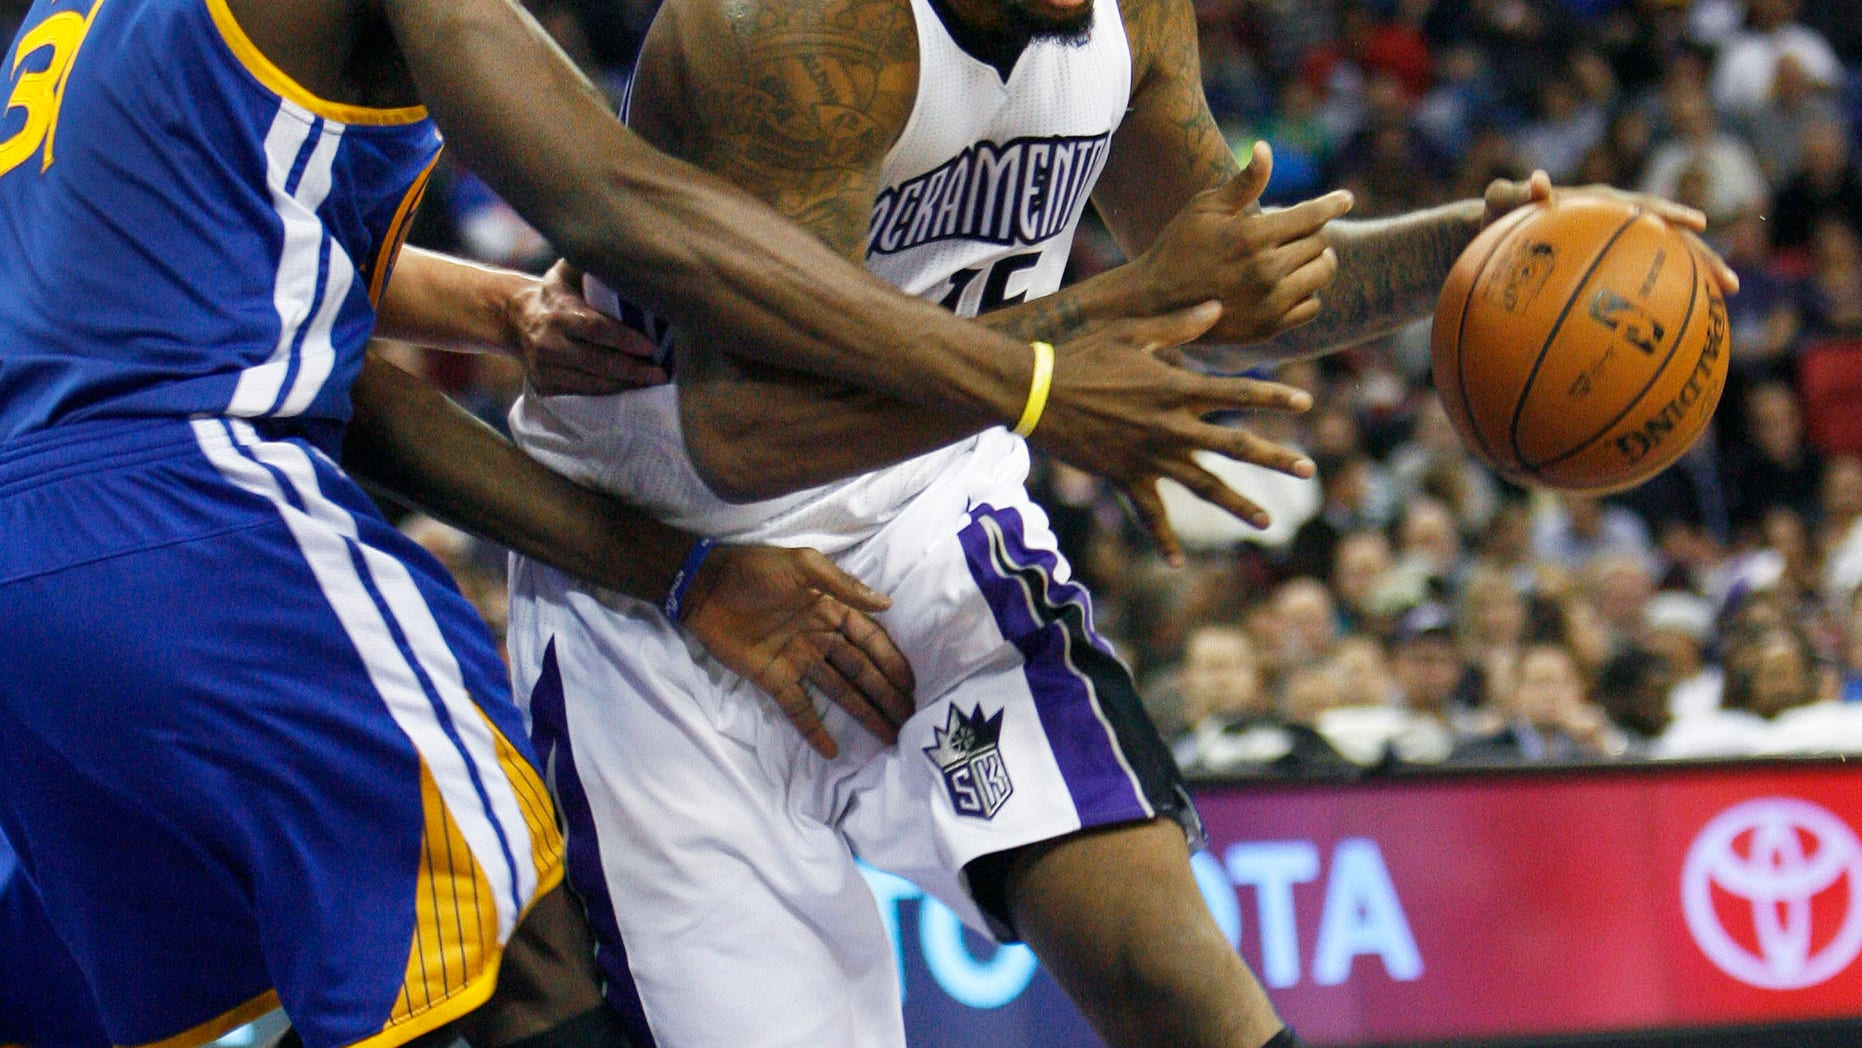 Sacramento Kings center DeMarcus Cousins, right, drives to the basket around Golden State Warriors defender Festus Ezeli during the second half of an NBA basketball game in Sacramento, Calif., on Wednesday, Dec. 19, 2012. The Kings won 131-127.(AP Photo/Steve Yeater)